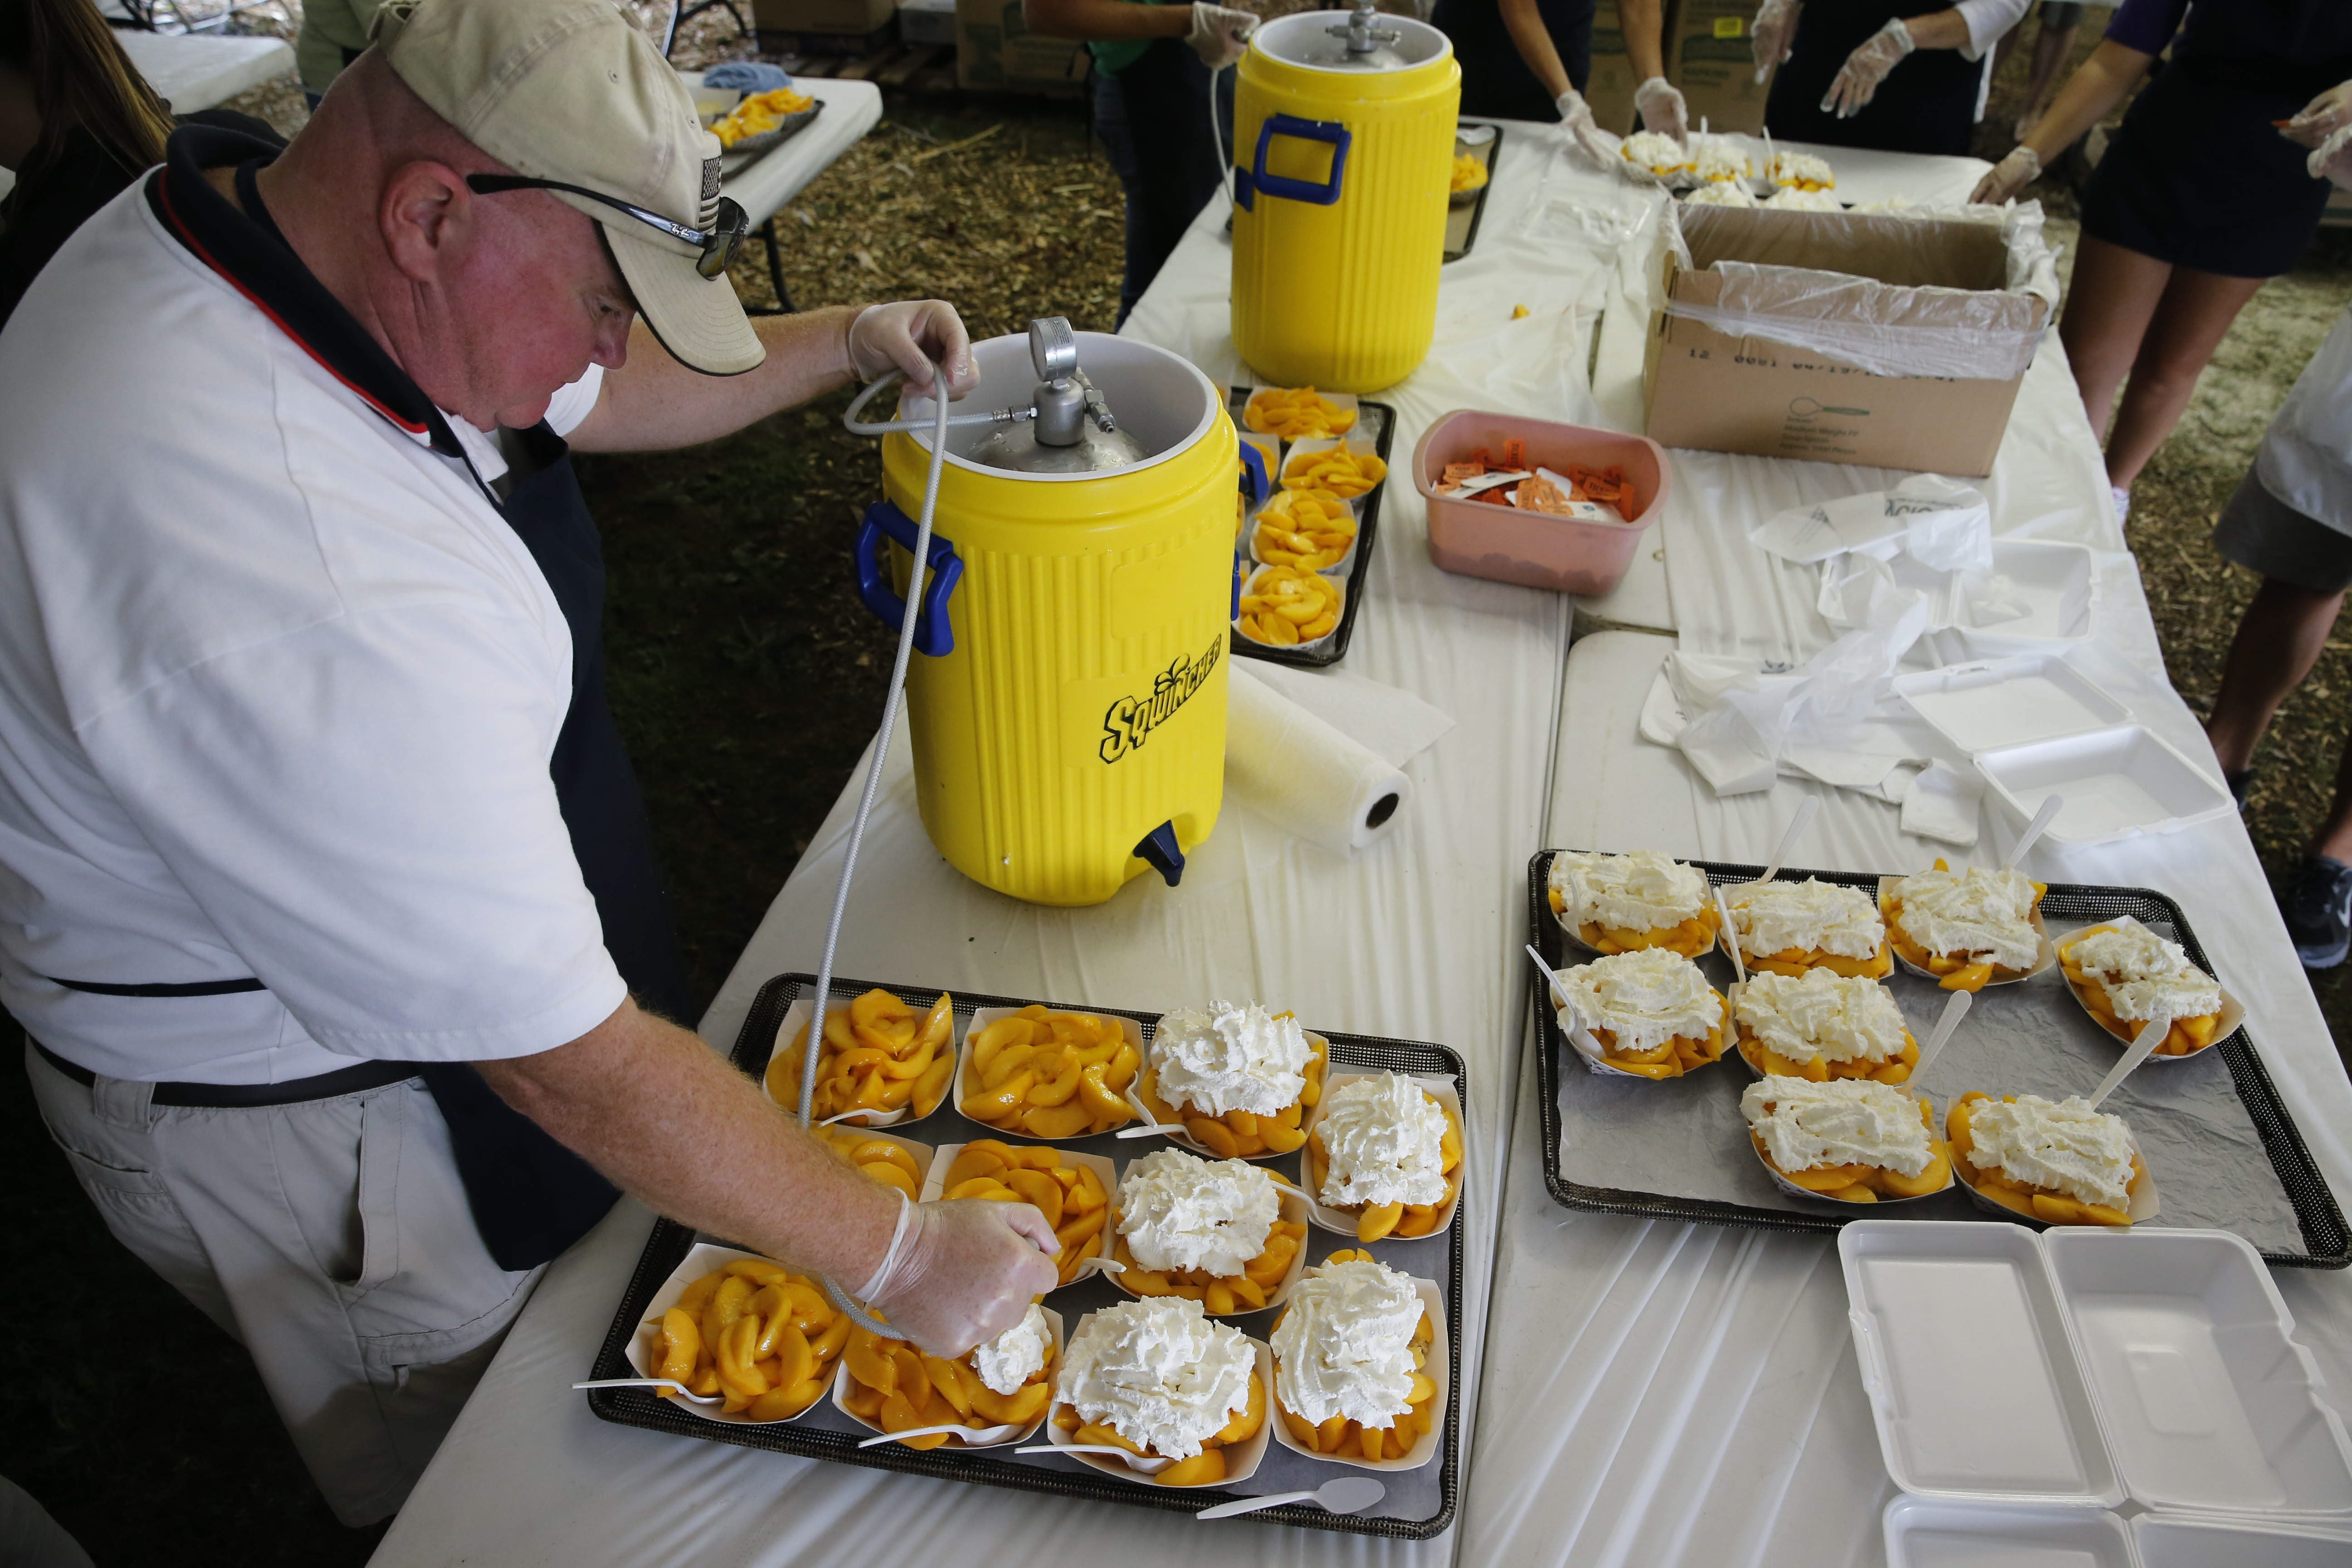 More than 13,000 pounds of local peaches are expected to be used for the shortcake at this year's Peach Festival, which begins Friday in Academy Park in Lewiston.